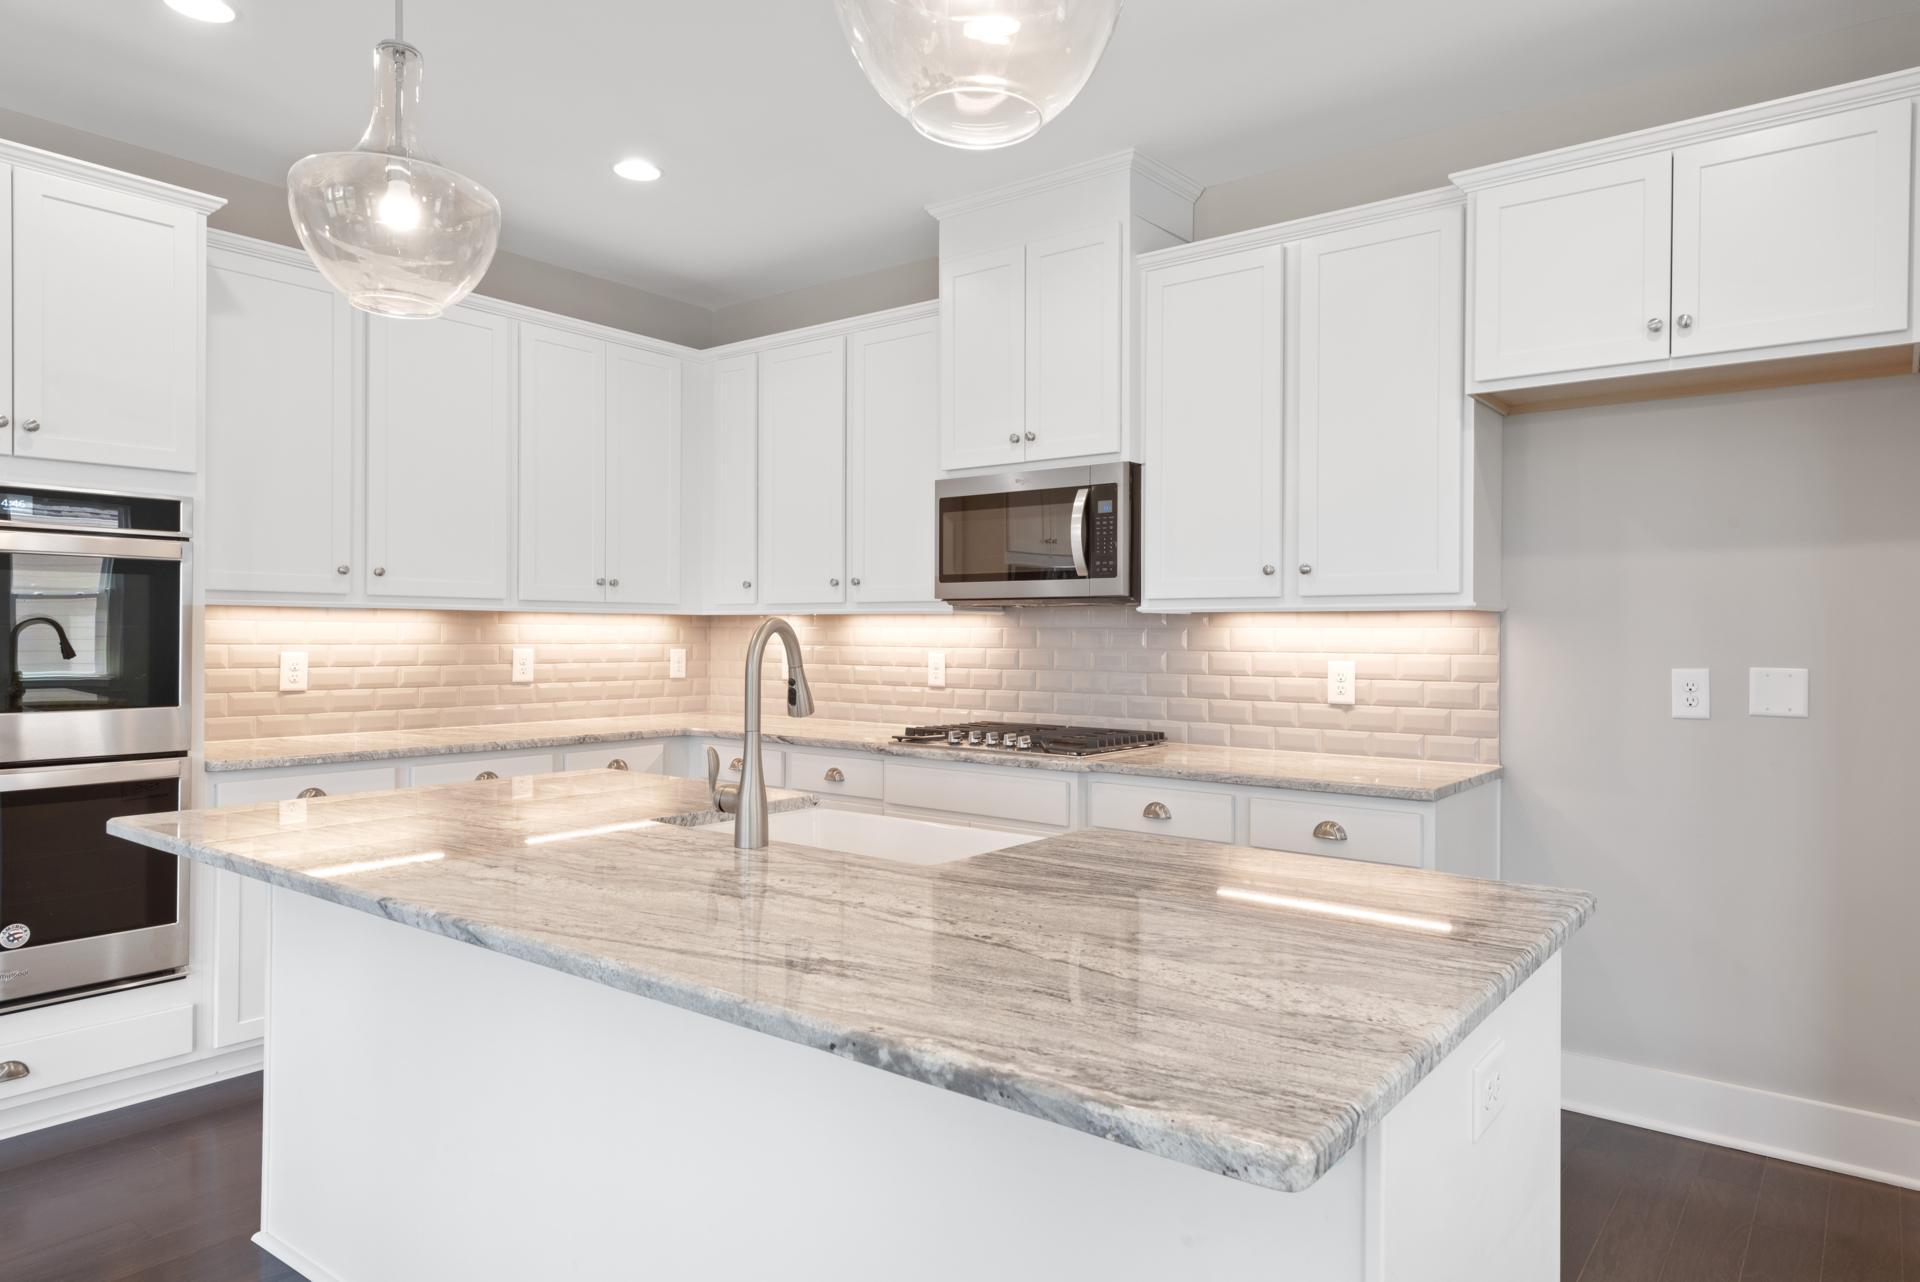 Kitchen featured in the Brookston By Drees Homes in Nashville, TN